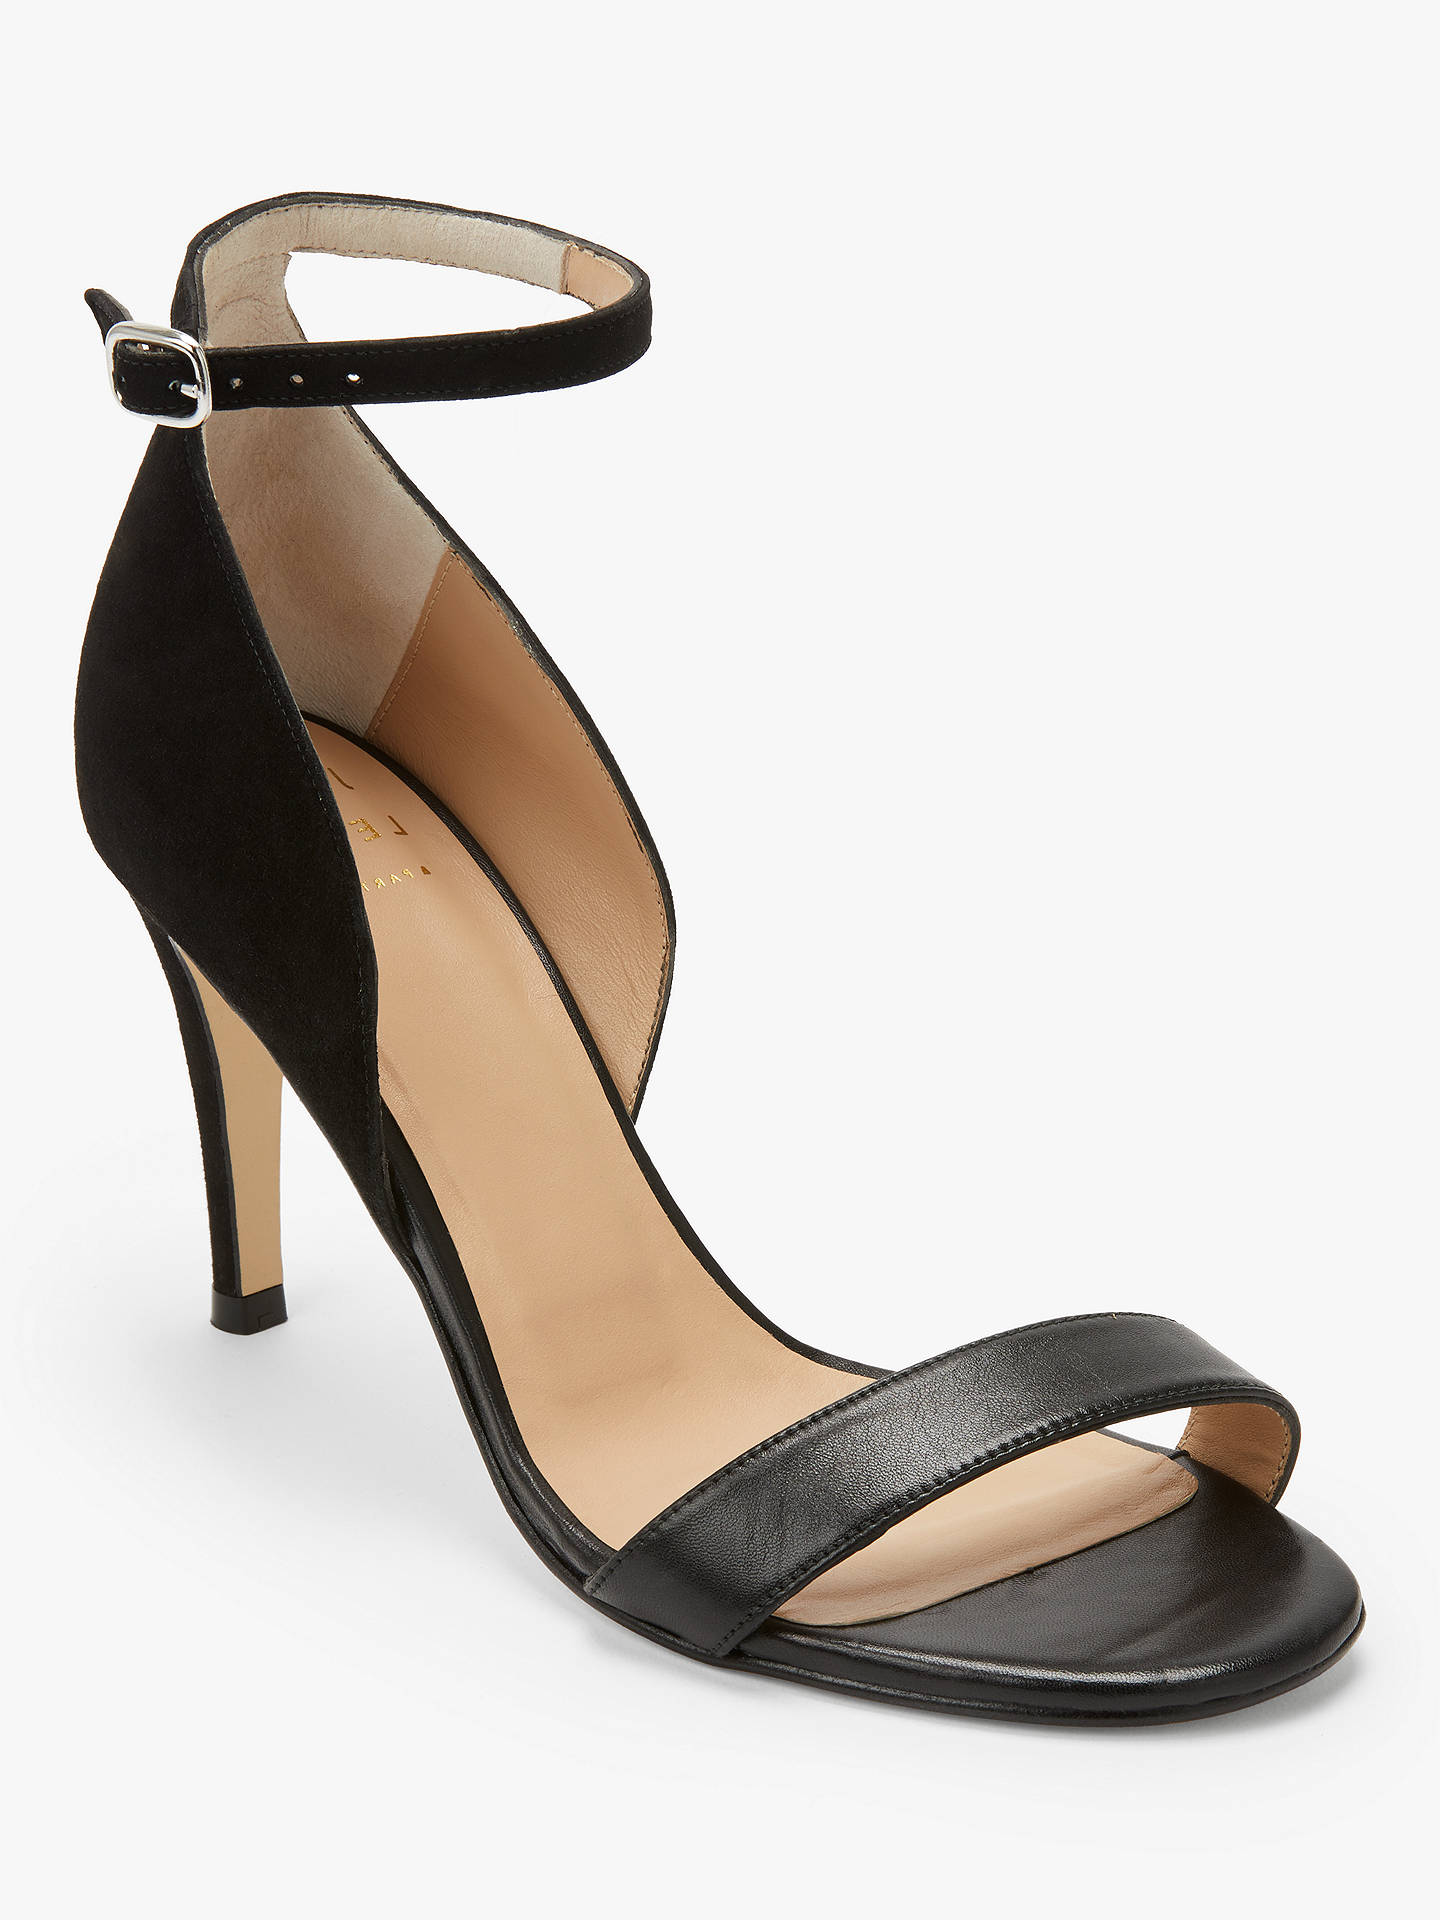 Buy John Lewis & Partners Bianca Stiletto Heel Sandals, Black Suede, 6 Online at johnlewis.com